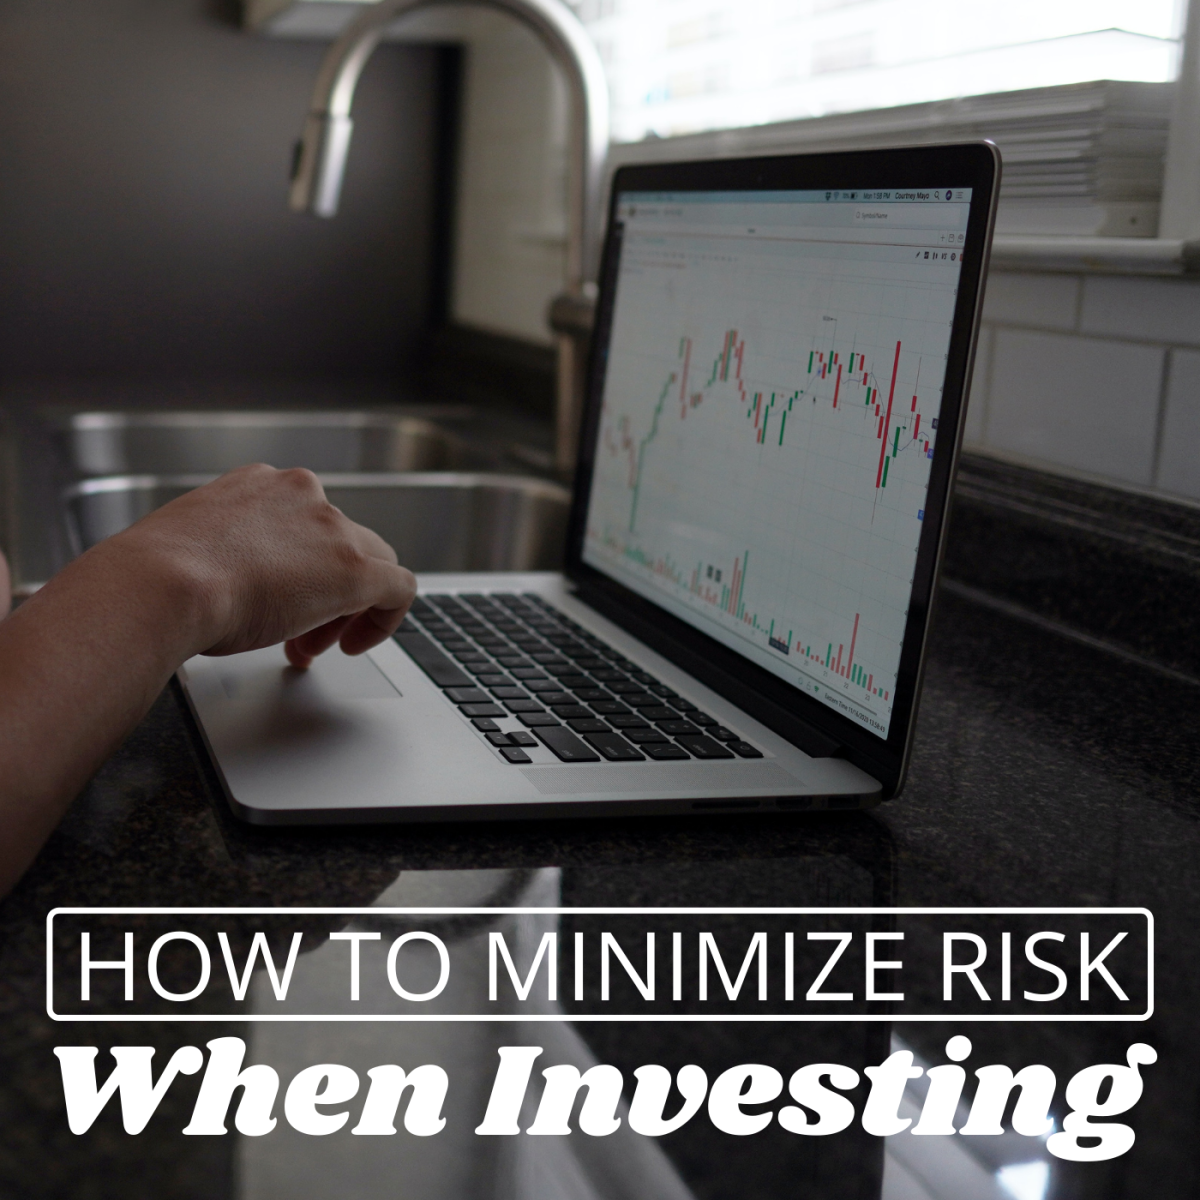 Investing safely could earn you more money over time than investing opportunistically.